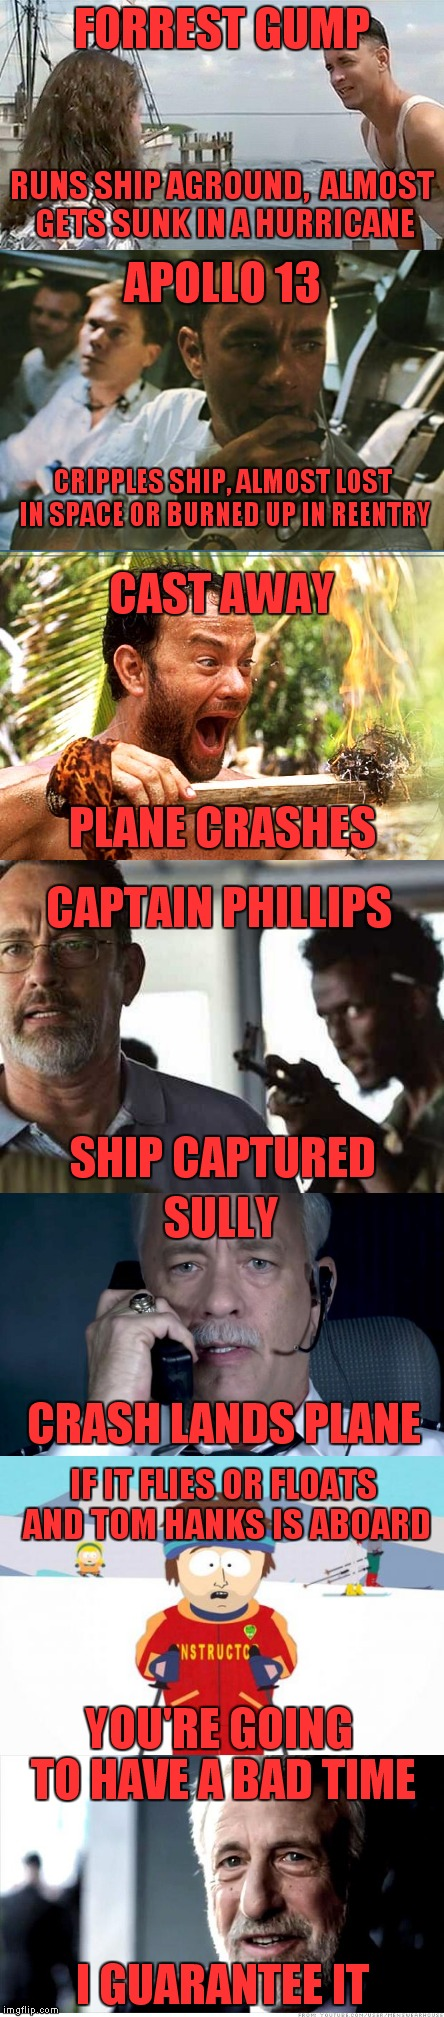 One of my favorite actors, but I wouldn't travel with him. | FORREST GUMP I GUARANTEE IT RUNS SHIP AGROUND,  ALMOST GETS SUNK IN A HURRICANE APOLLO 13 CRIPPLES SHIP, ALMOST LOST IN SPACE OR BURNED UP I | image tagged in tom hanks,forrest gump,apollo 13,cast away,captain phillips,sully | made w/ Imgflip meme maker